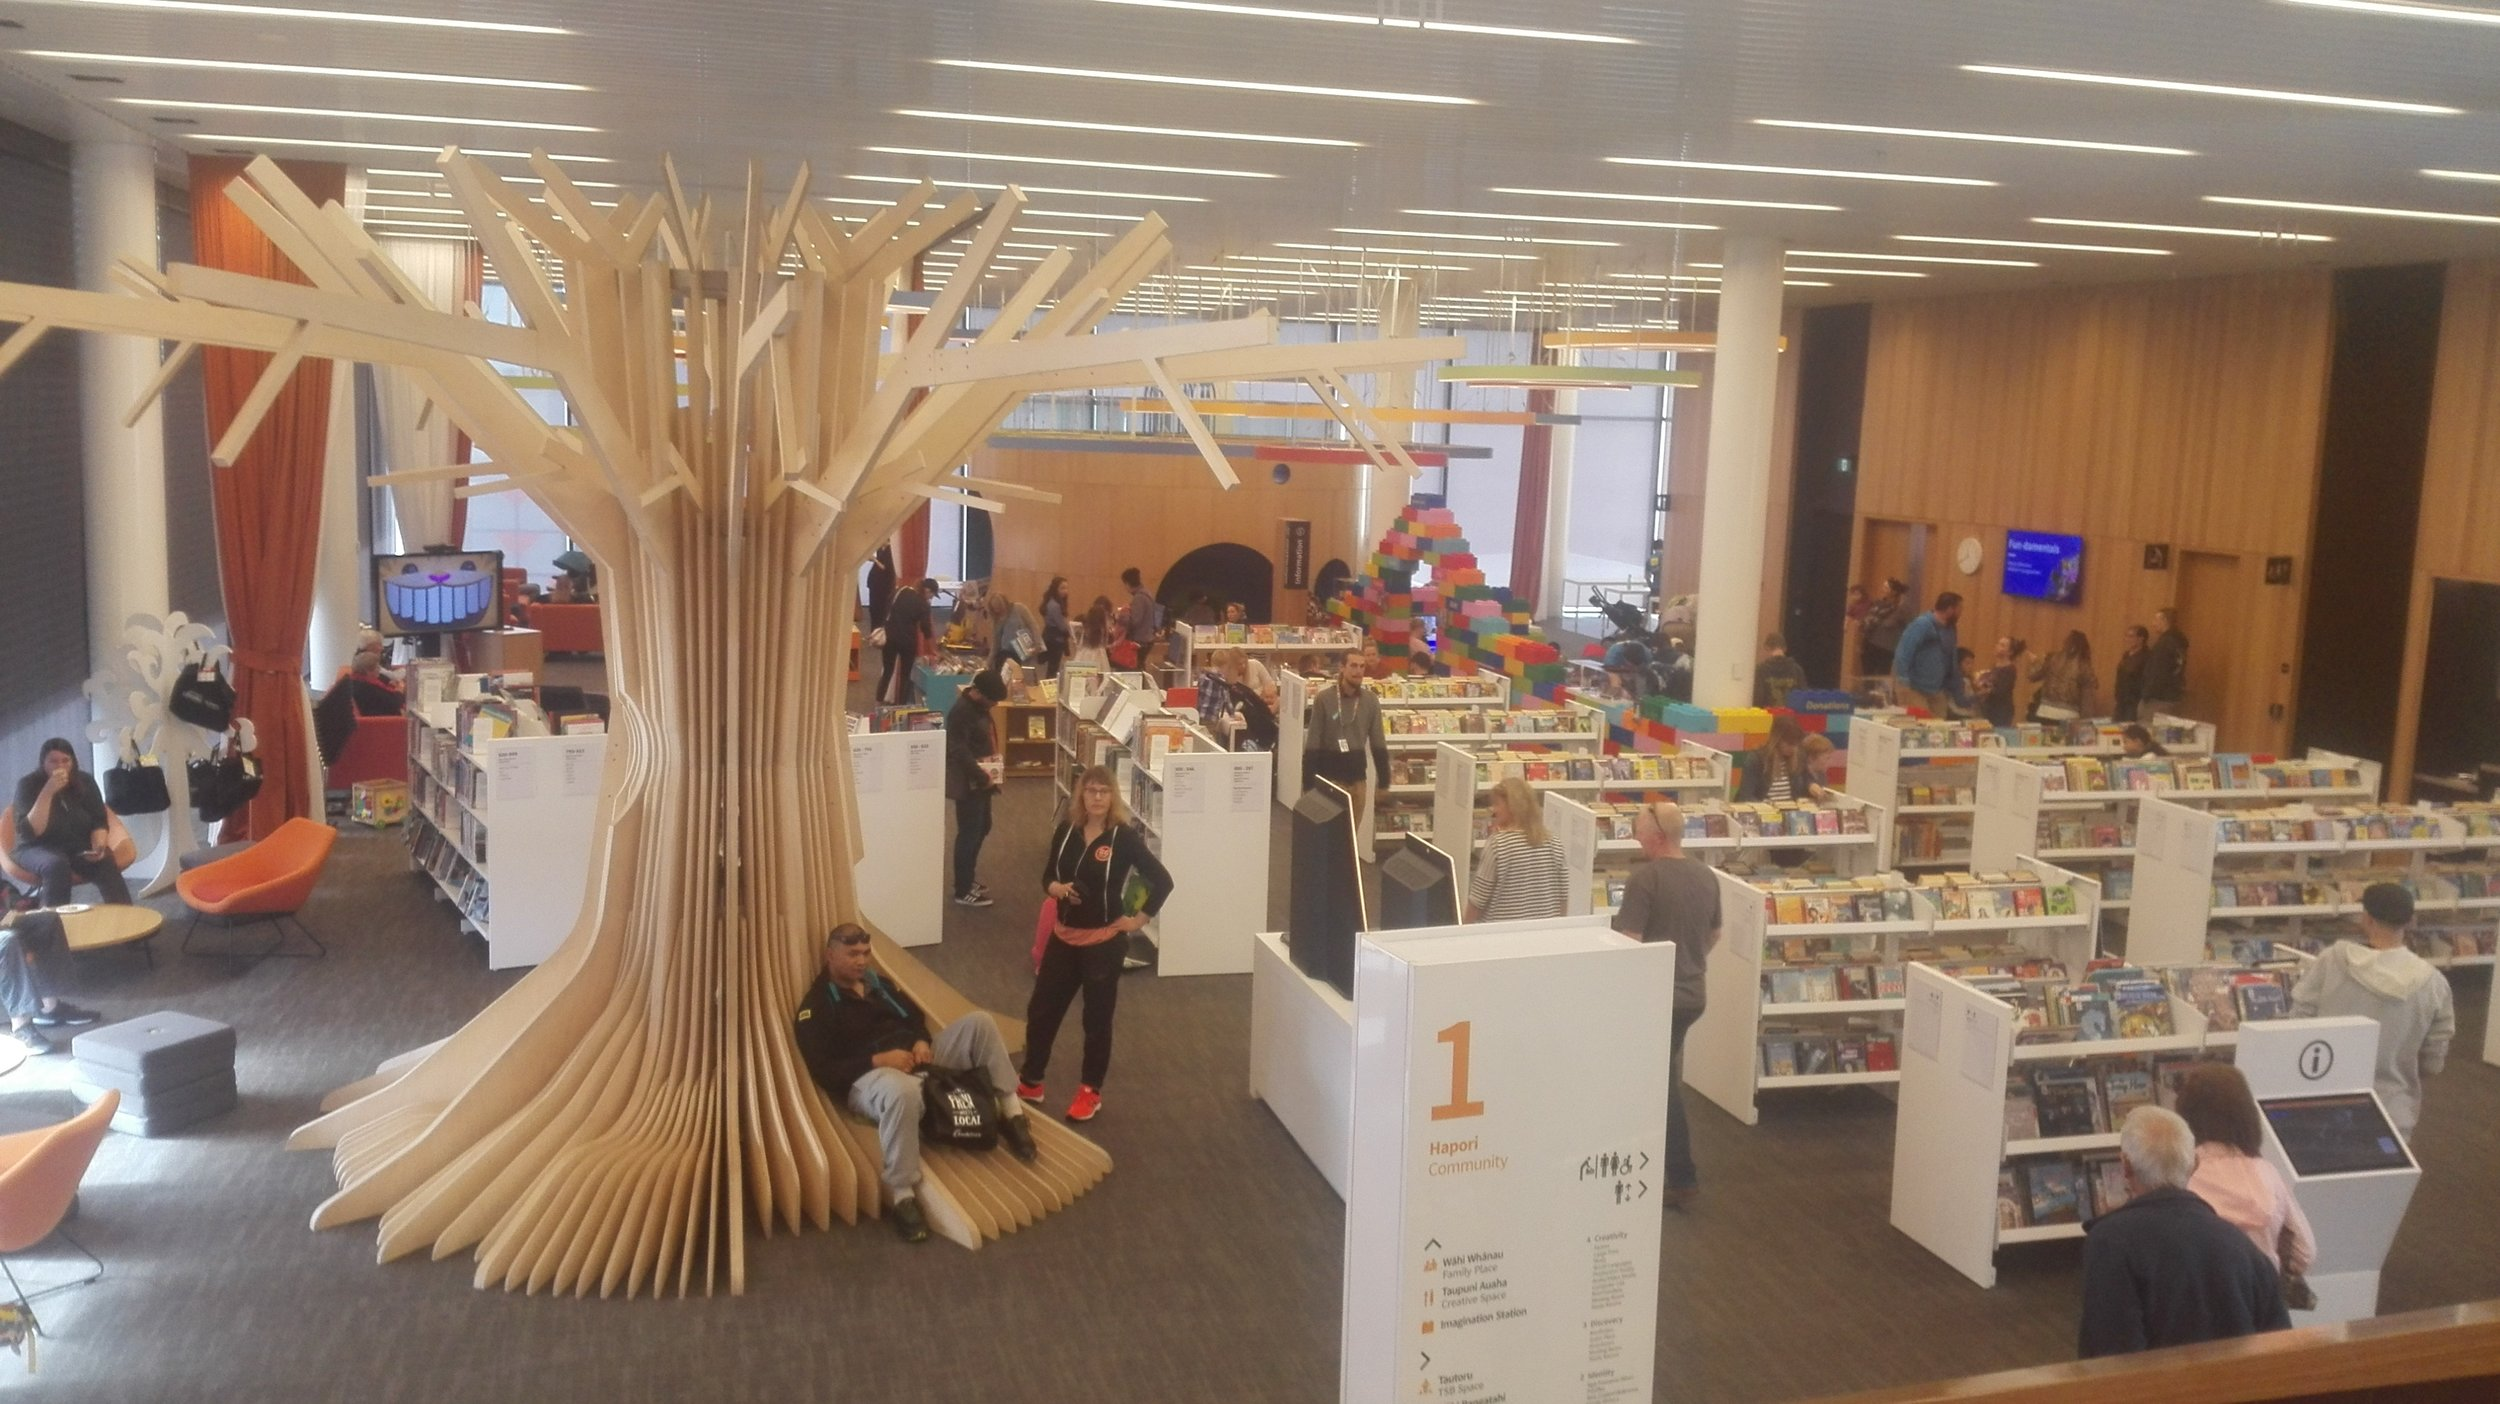 The children's area on the first floor of Tūranga library